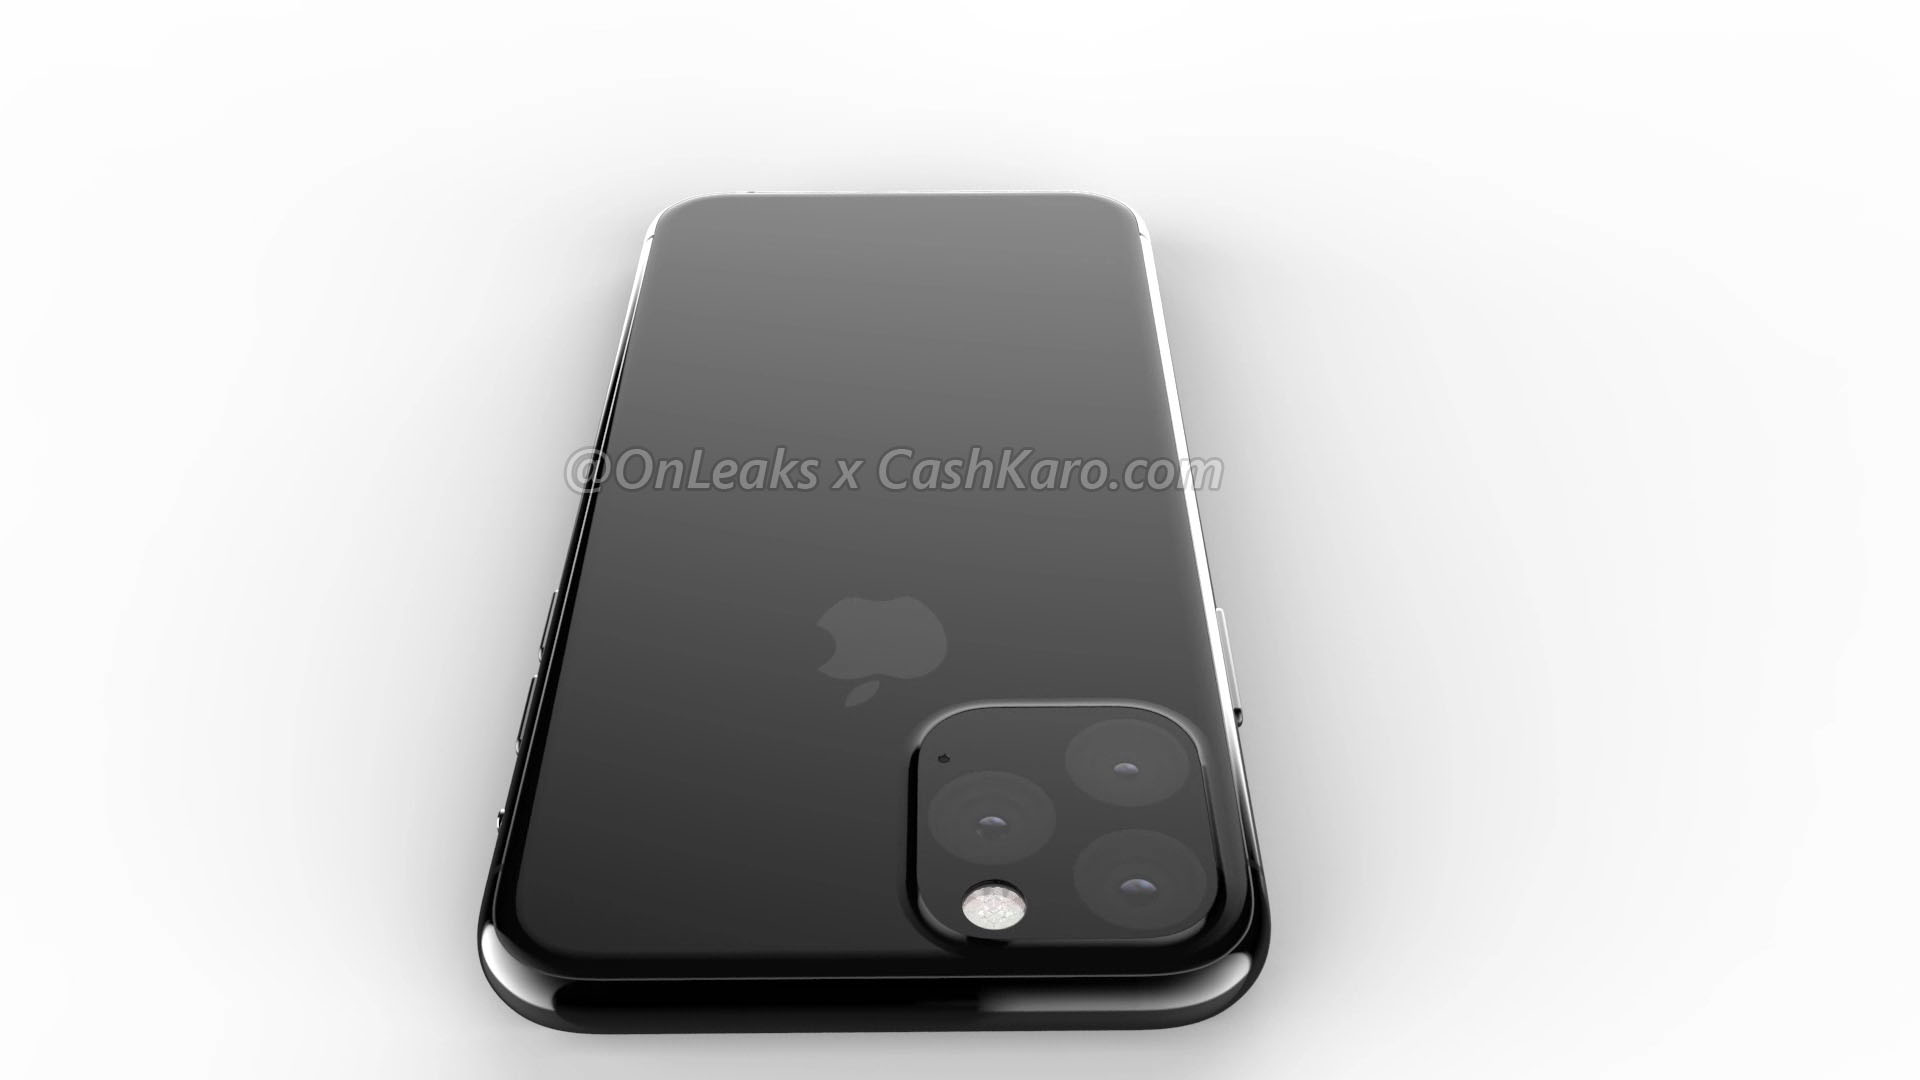 Iphone Xi Renders New Back Glass Design Img 2